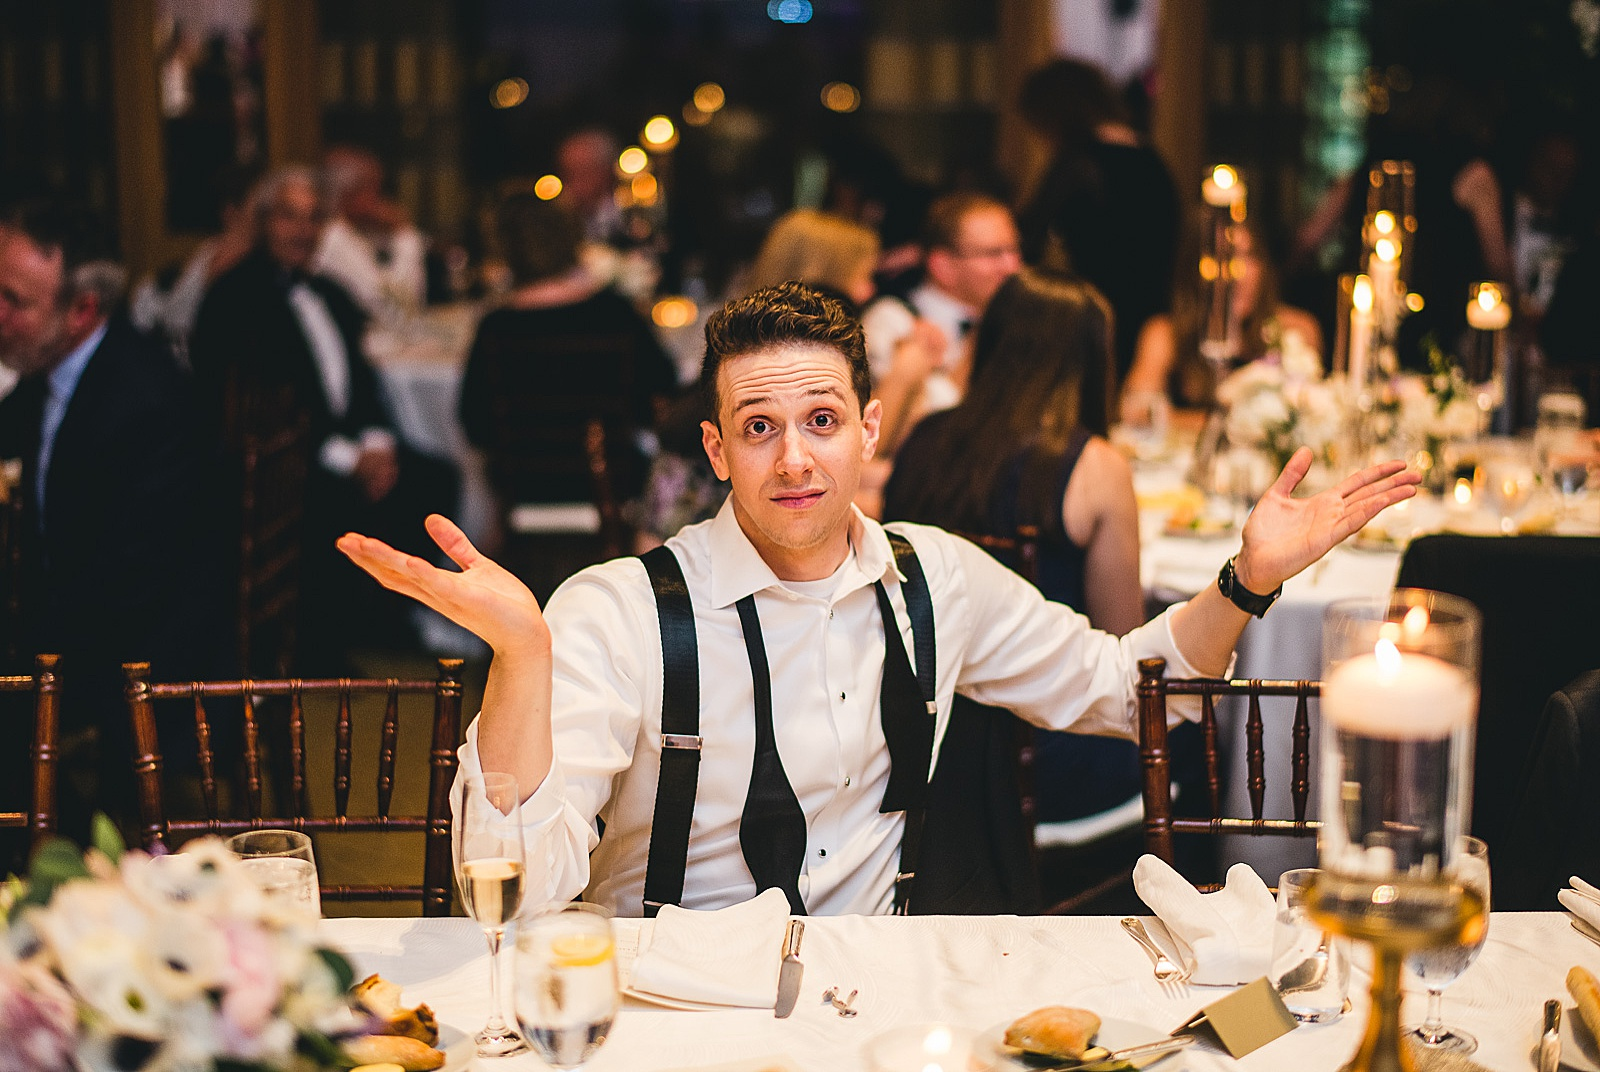 64 whaaaaaat - Susie + Eric's Jewish Wedding at the Peninsula Hotel in Chicago